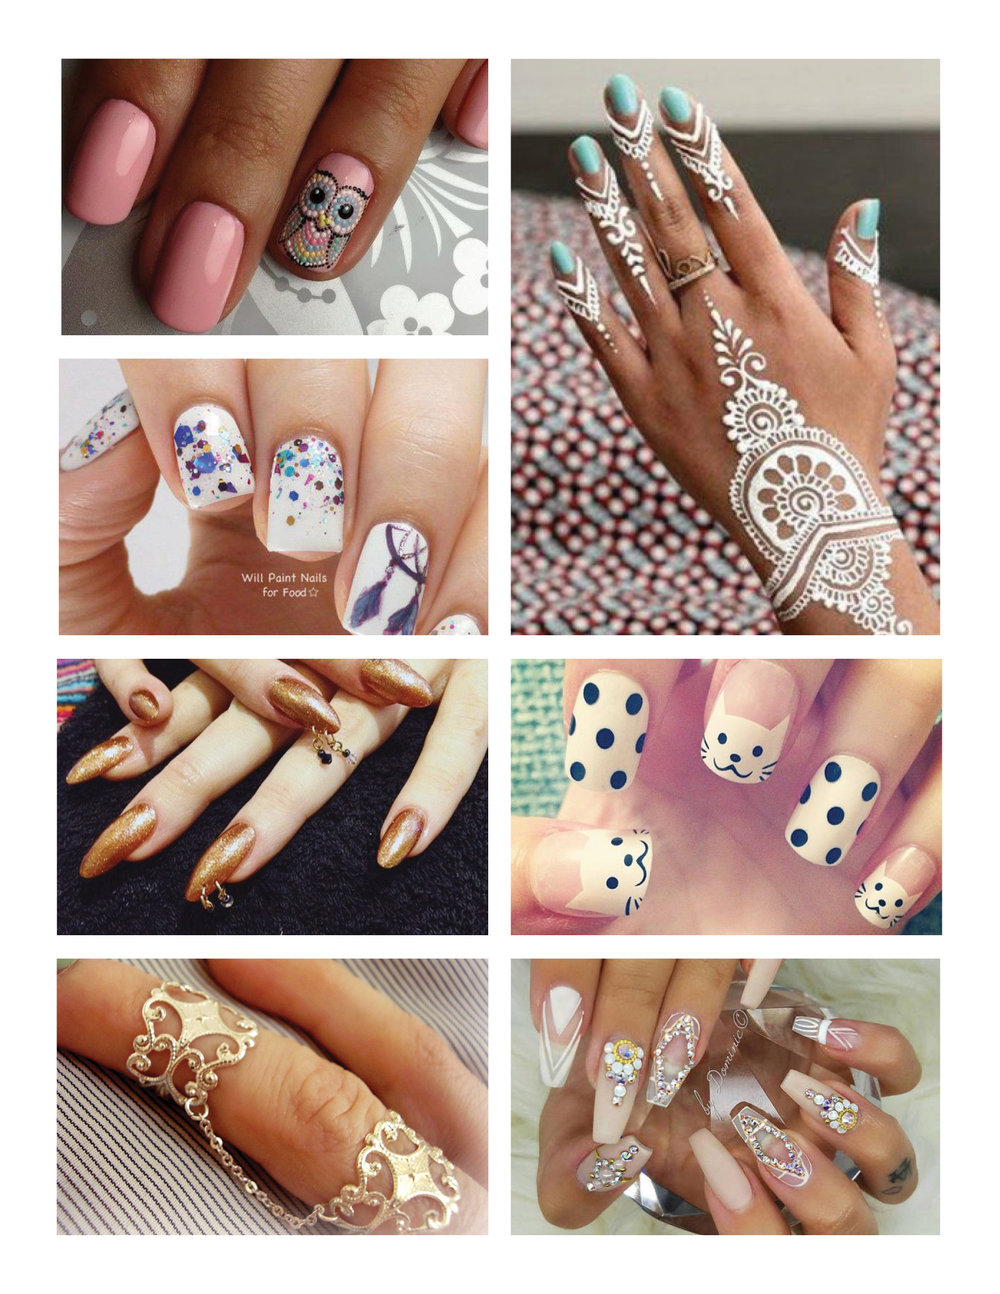 Inspiration  Shown here are just a few examples of nail art and ornamentation I intend to produce over the coming months.